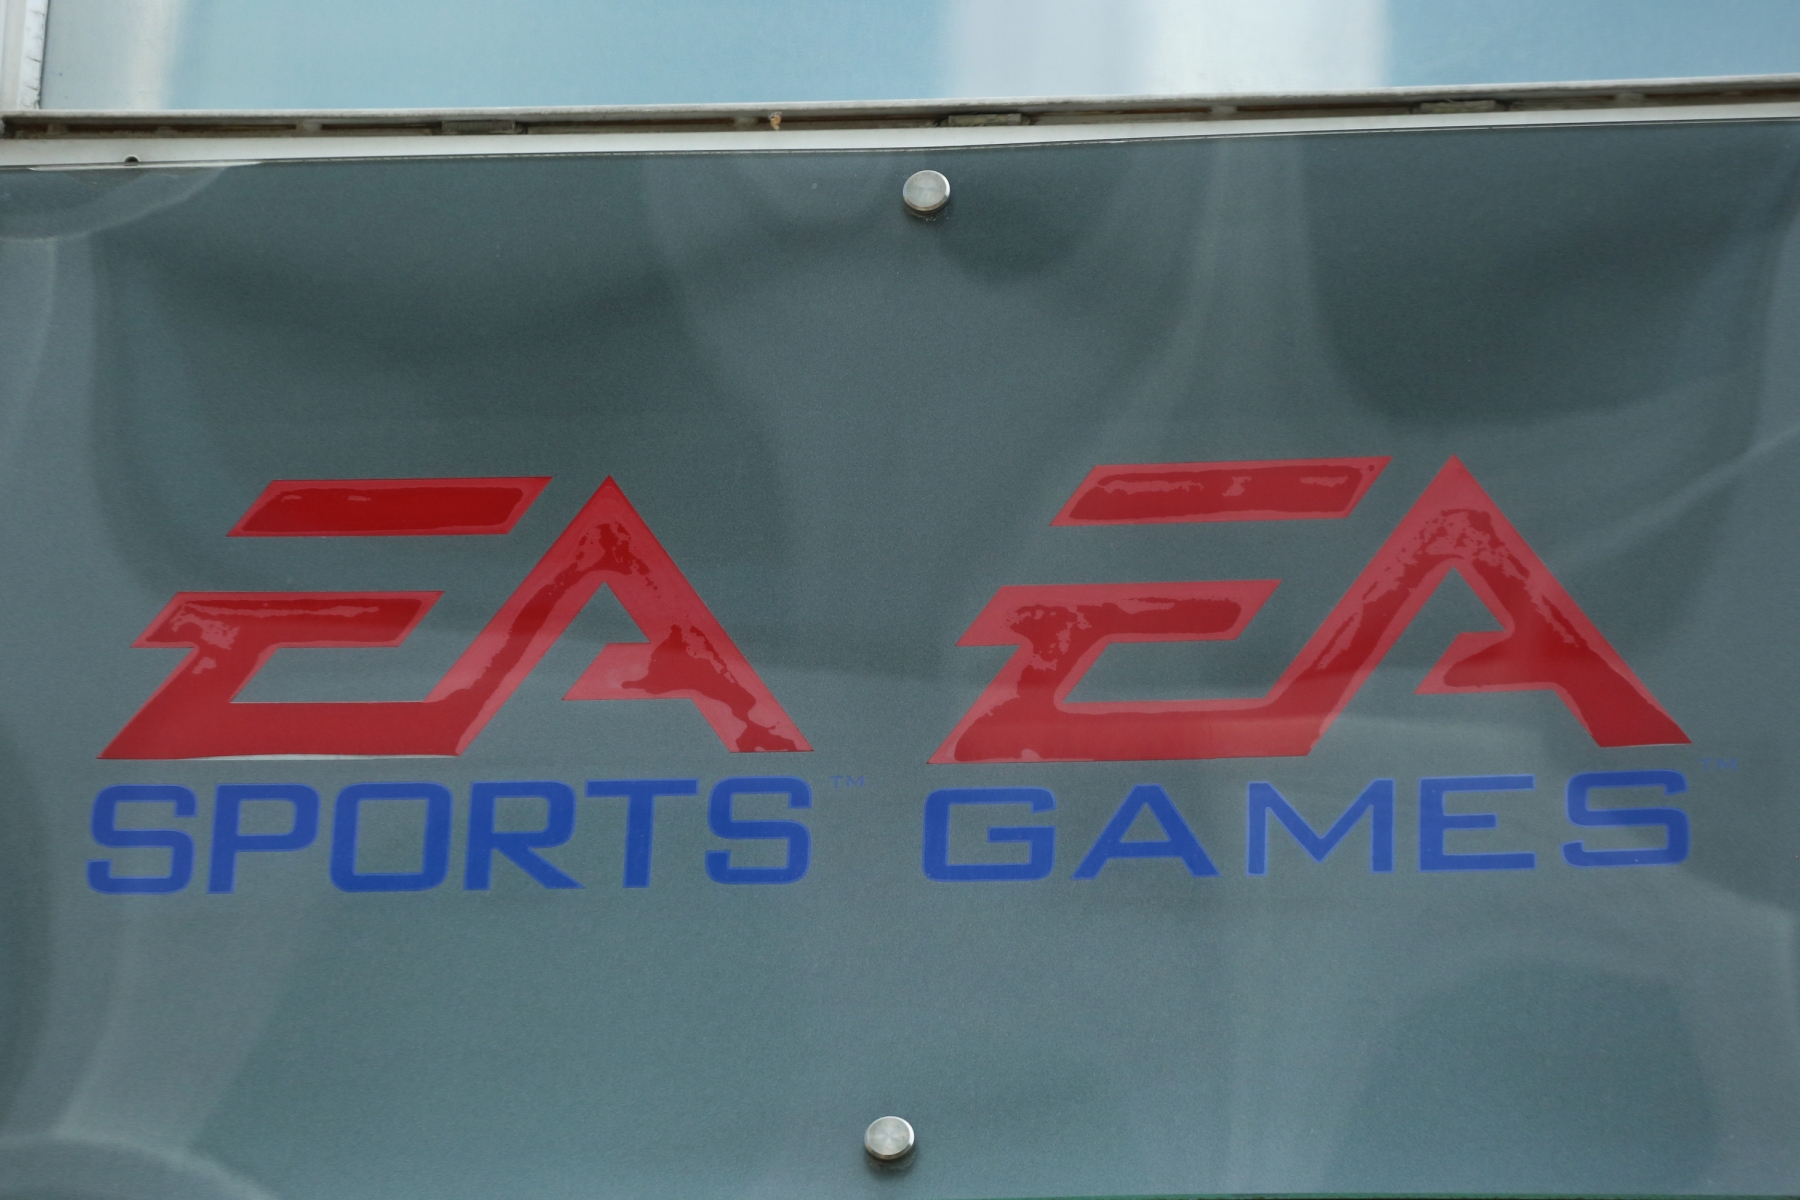 The logo of the American video game company Electronic Arts and its sports game brand EA Sports headquartered in Redwood City, California is seen in the Munich pedestrian zone. EA Sports' Madden game often draws criticism from athletes for its player ratings. (Photo by Alexander Pohl/NurPhoto)